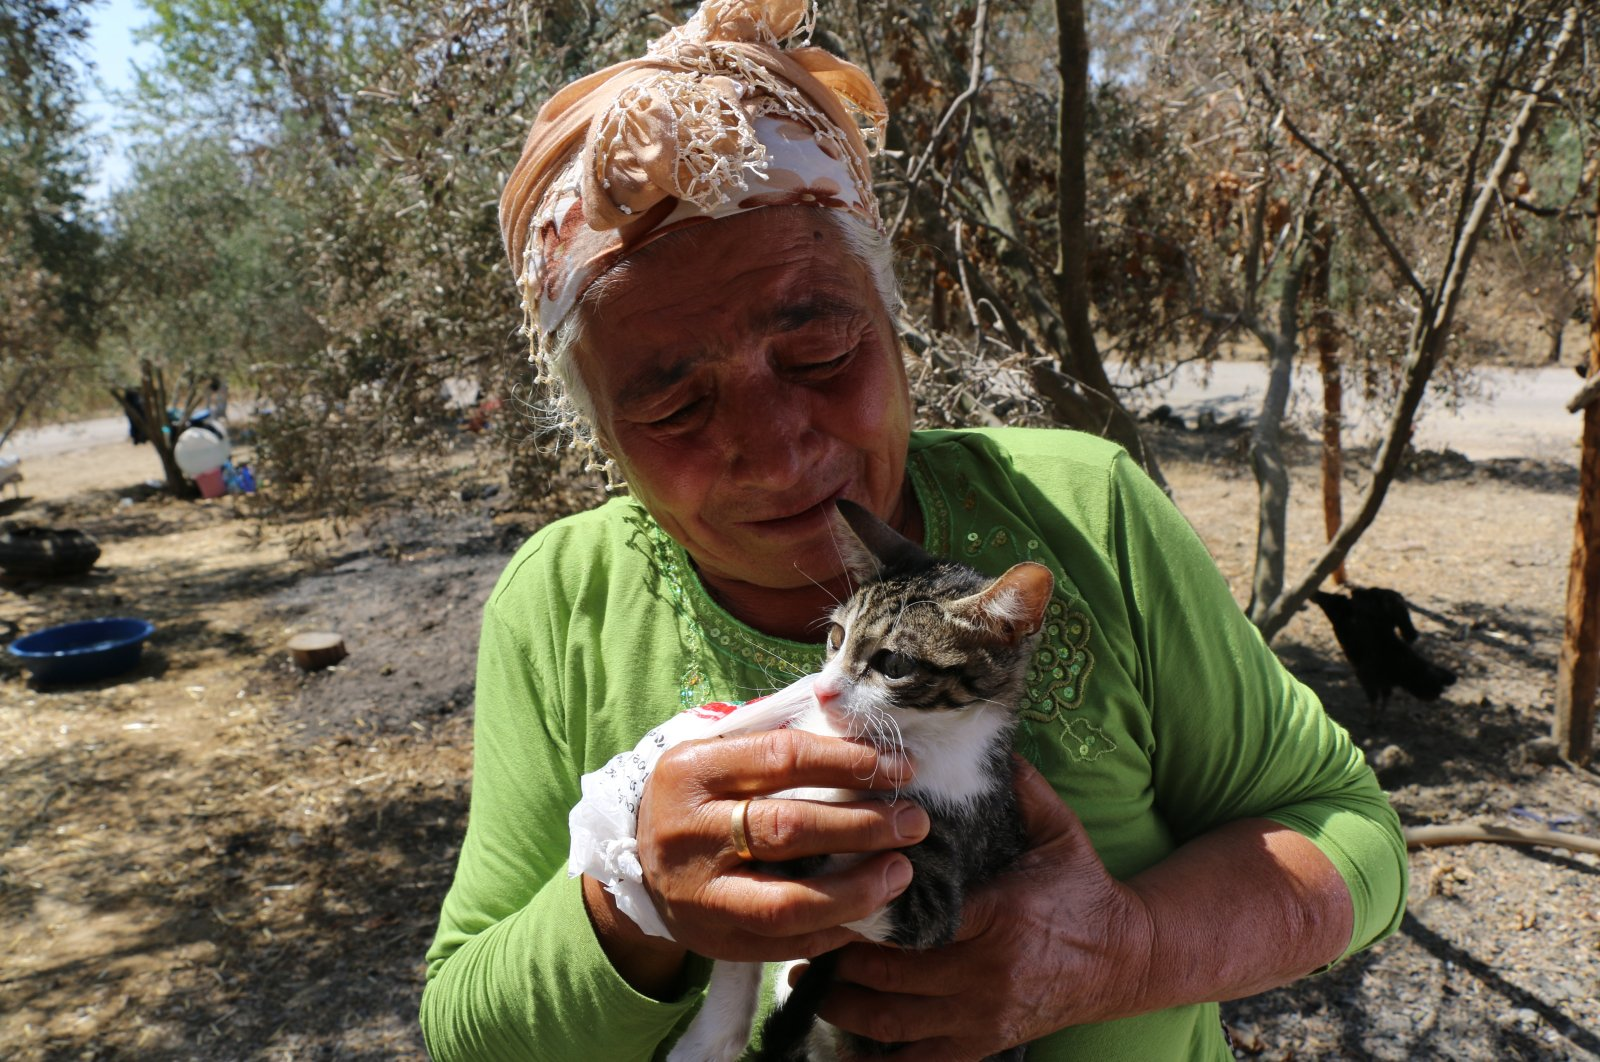 """Fatma Duysak pets her cat """"Hayat"""" who recovered after suffering injuries due to the wildfire, in Aladağ district, in Adana, southern Turkey, Aug. 6, 2021. (AA PHOTO)"""